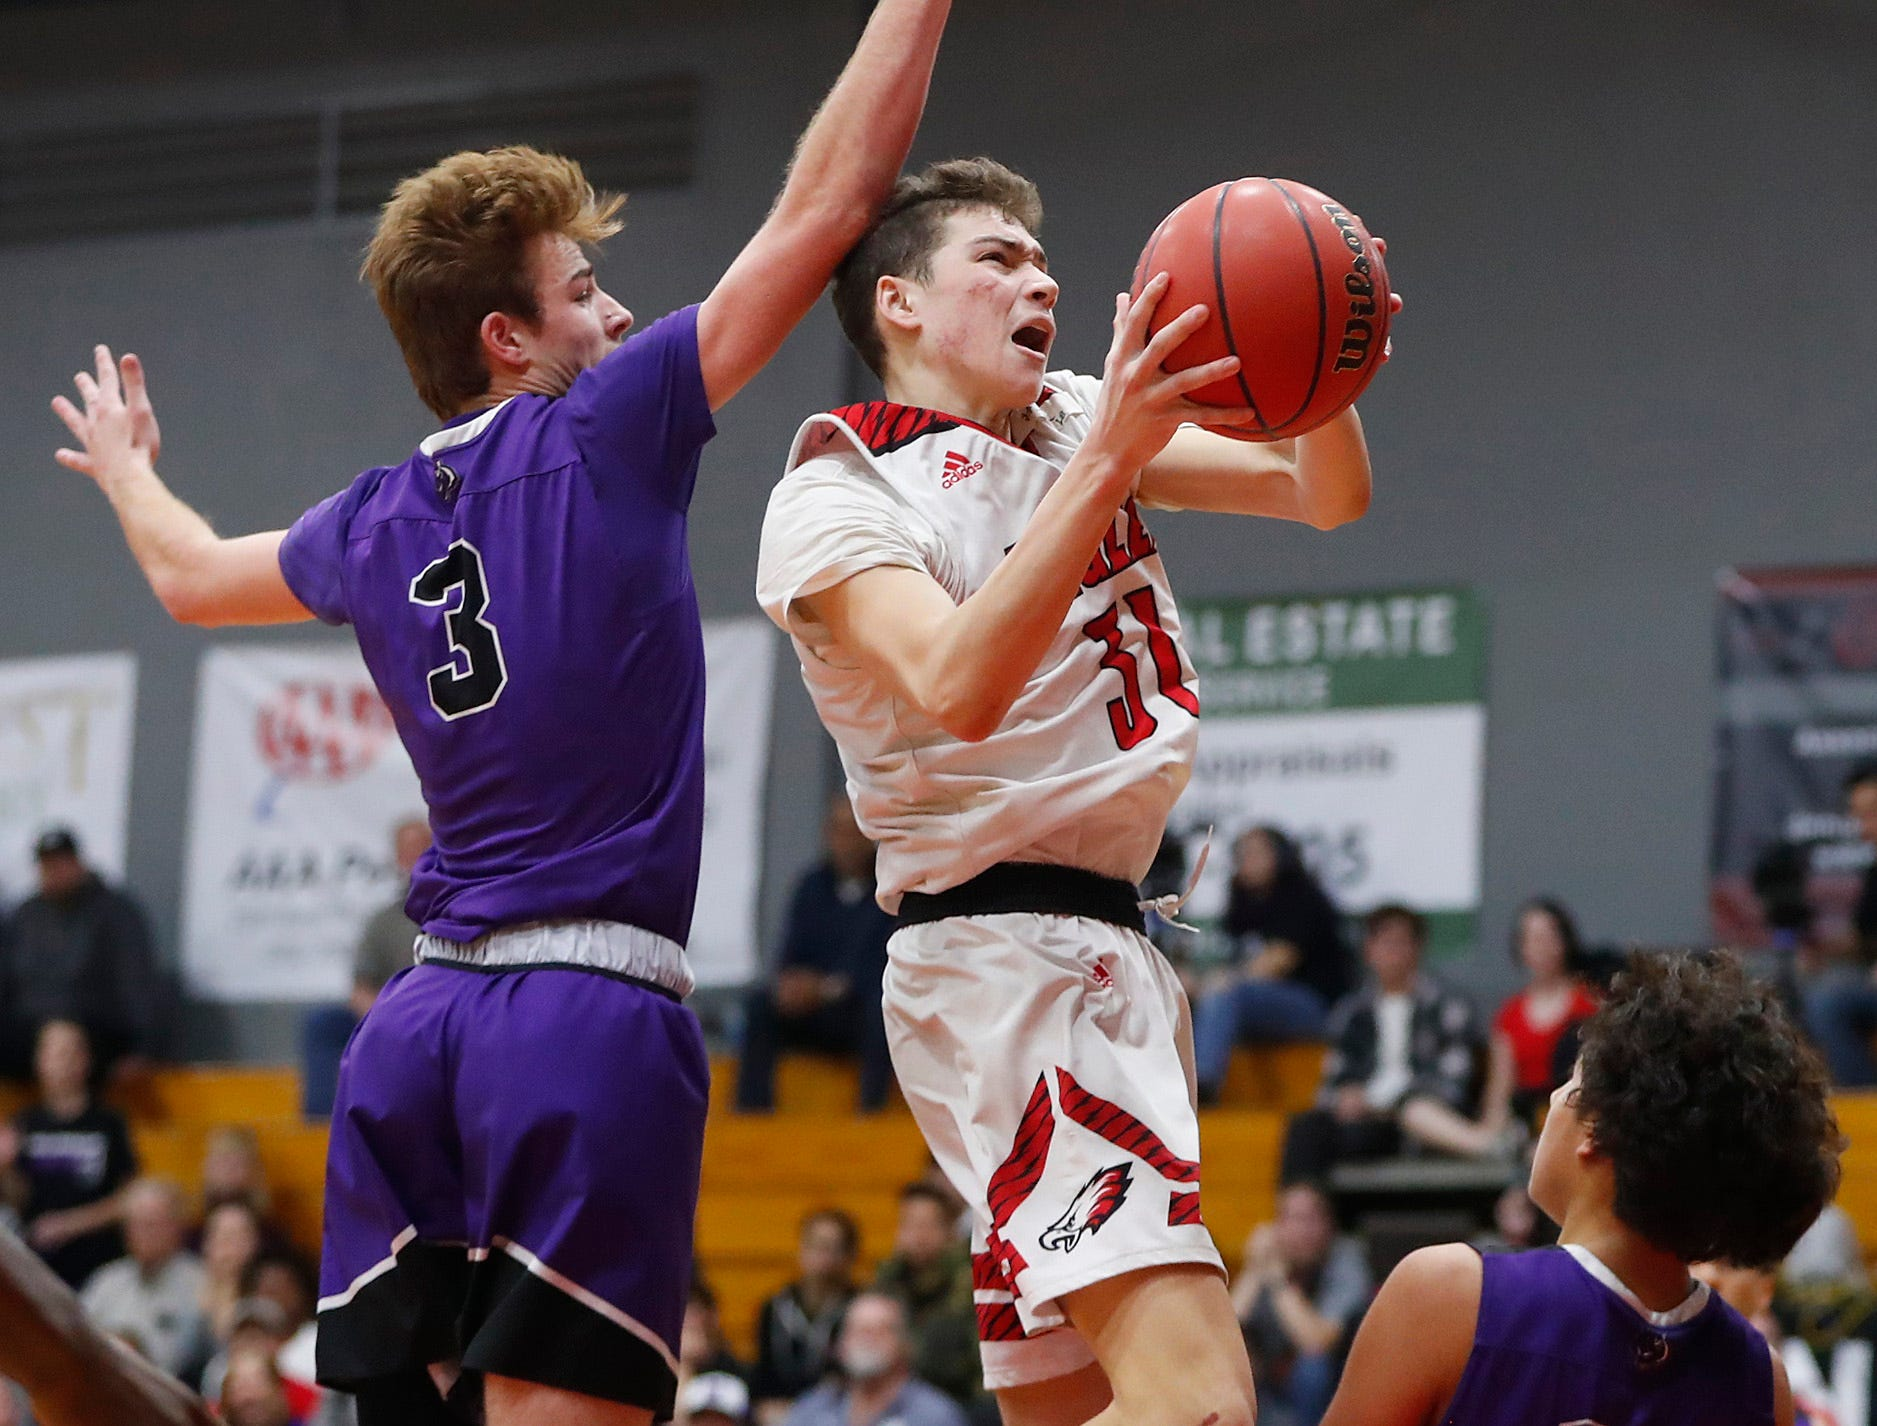 Ironwood's Cassius Carmichael (31) shoots against Millennium's Michael Batchelor (3) during the first half of the 5A state quarterfinal game at Ironwood High School in Glendale, Ariz. on February 15, 2019.